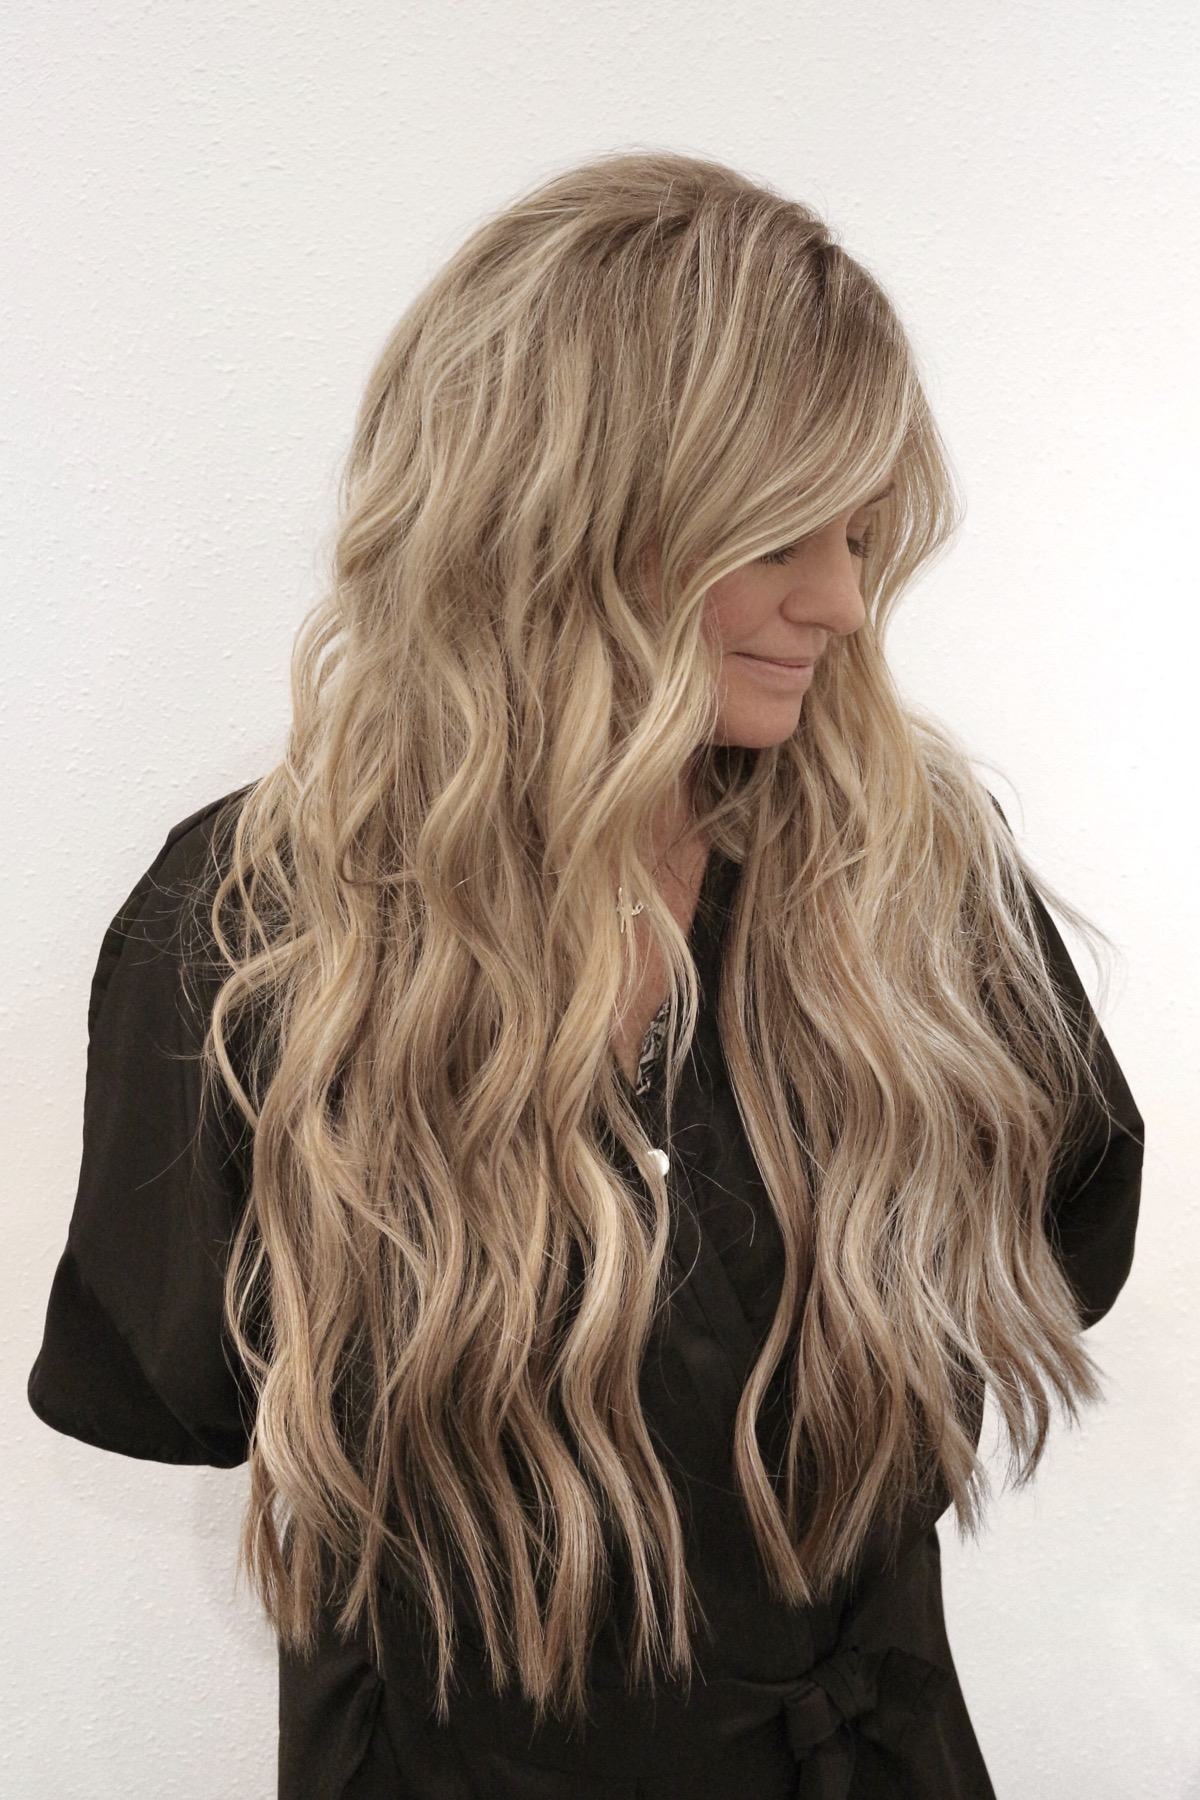 Nbr The Most Customized Hair Extensions Natural Beaded Rows Dkw